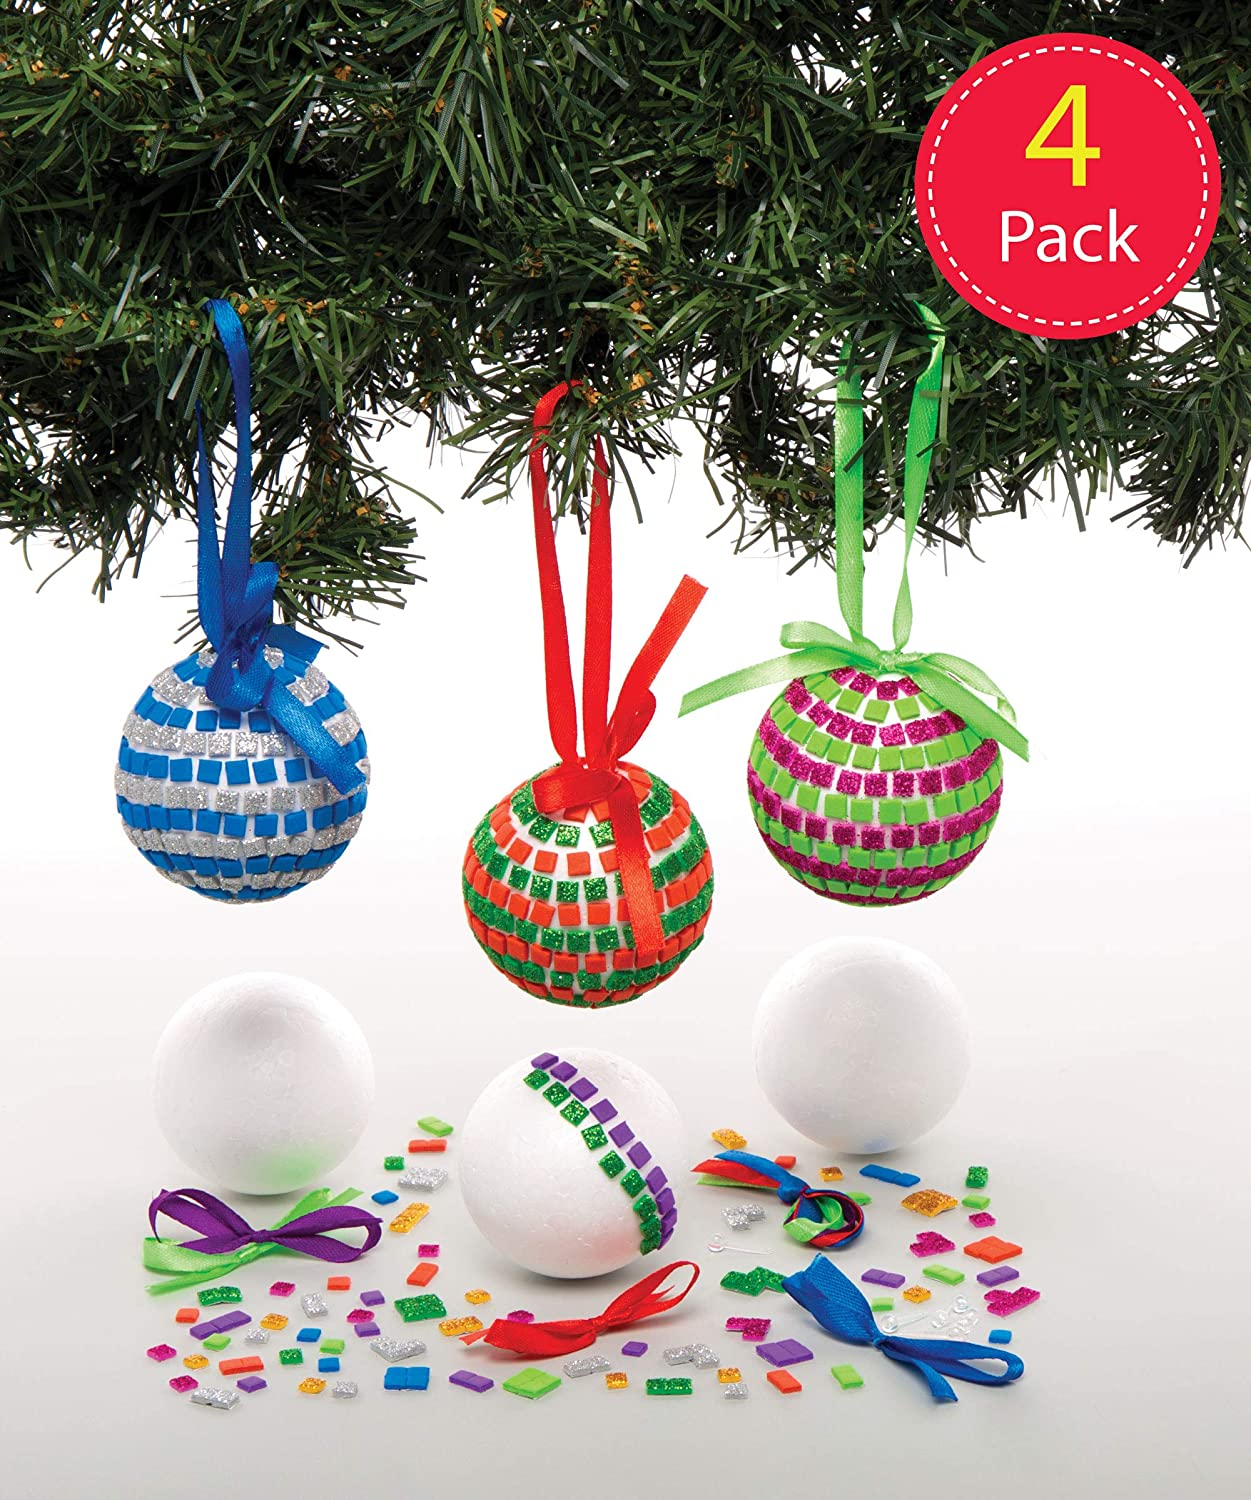 Christmas Arts and Crafts Baker Ross Mosaic Ornament Kits Pack of 4